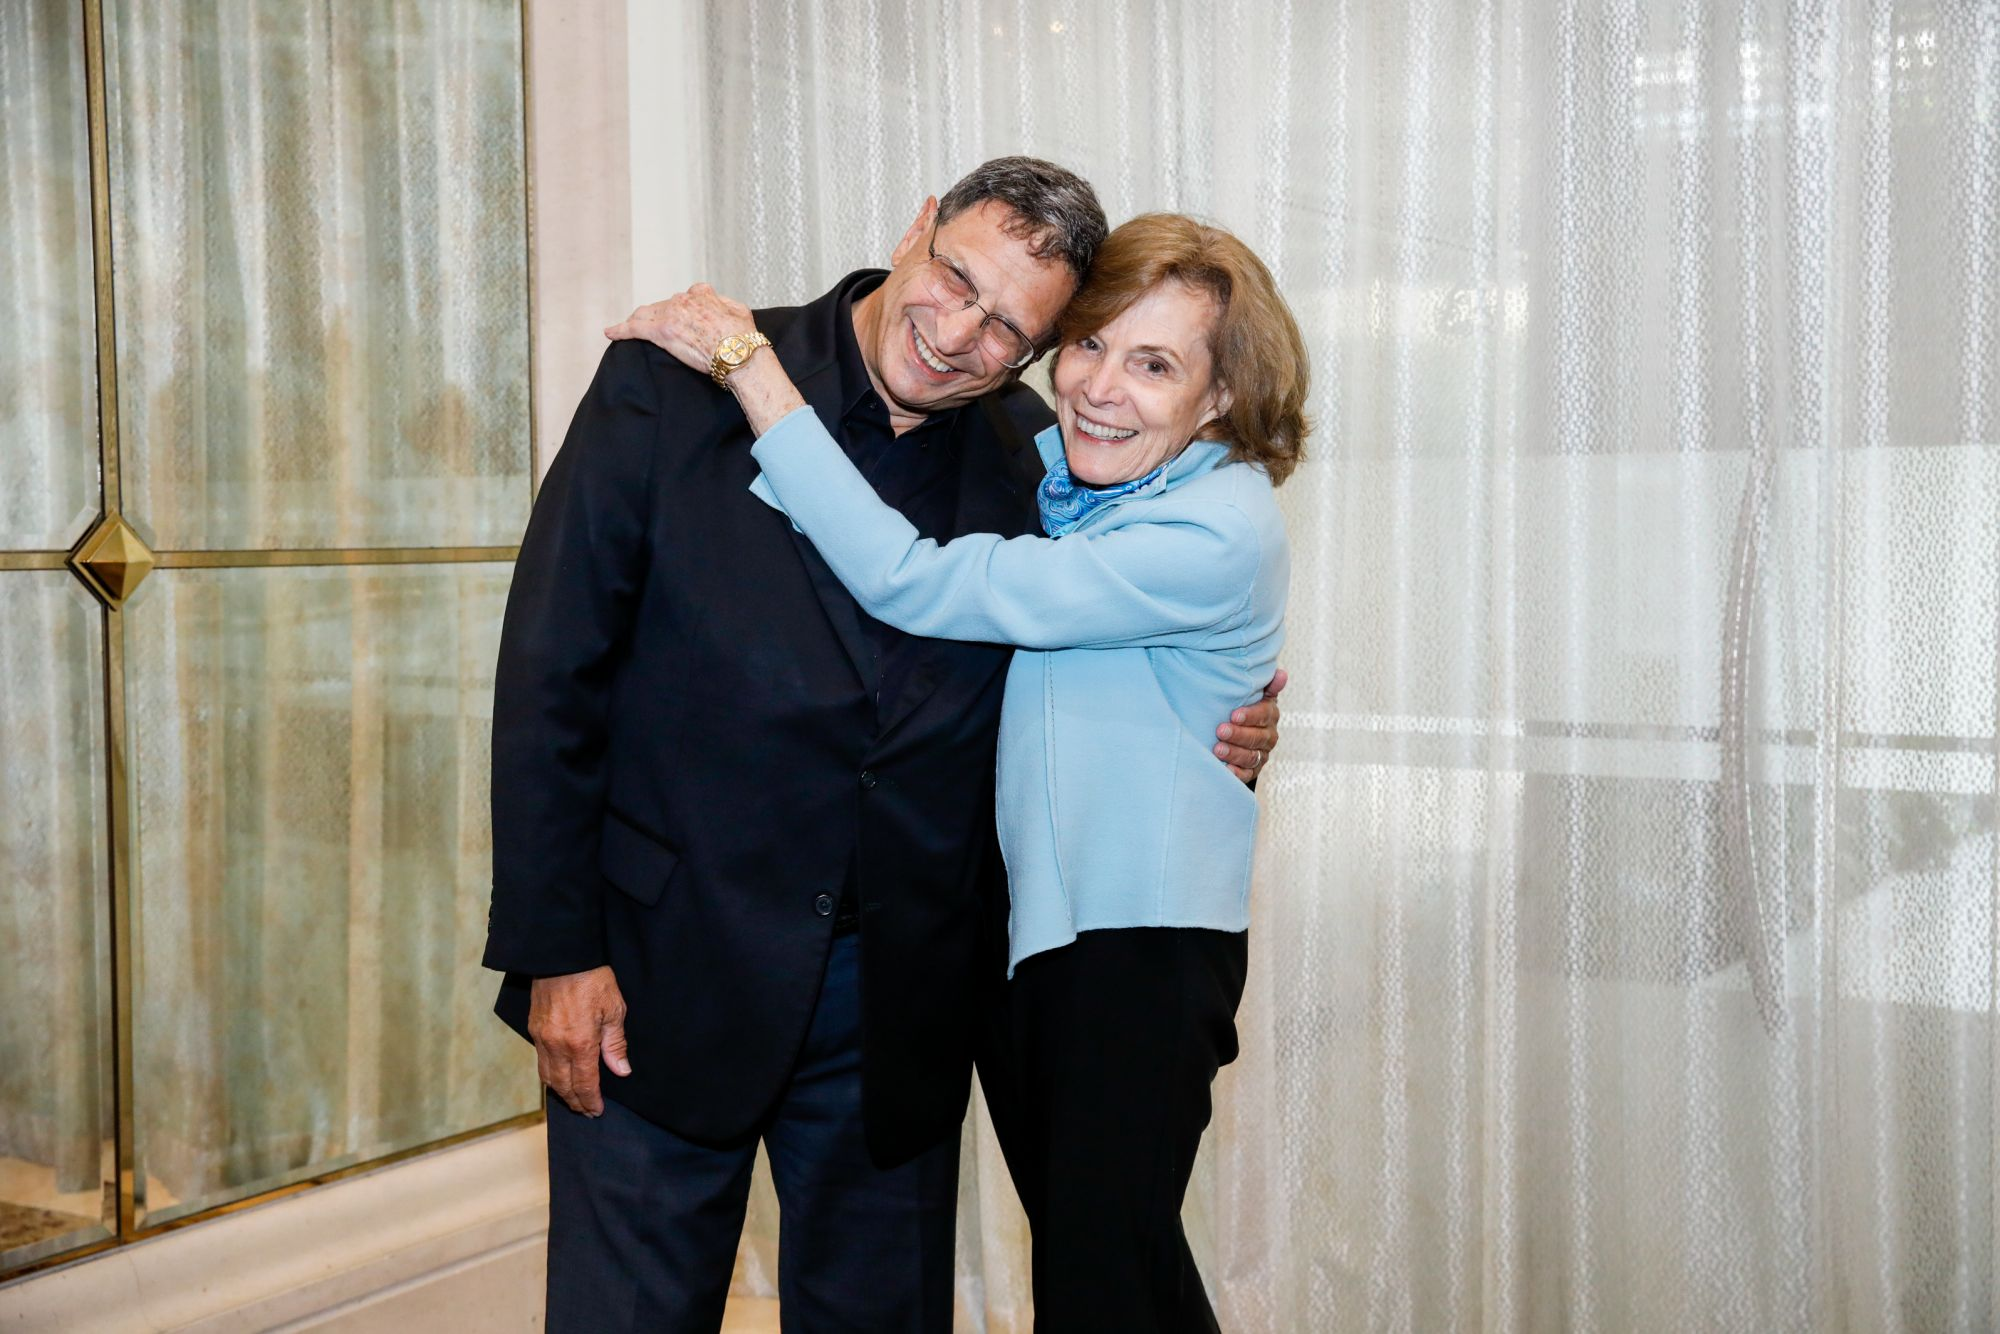 Sylvia Earle and David Doubilet Offer Sound Advice To Back The Rolex Perpetual Planet Campaign